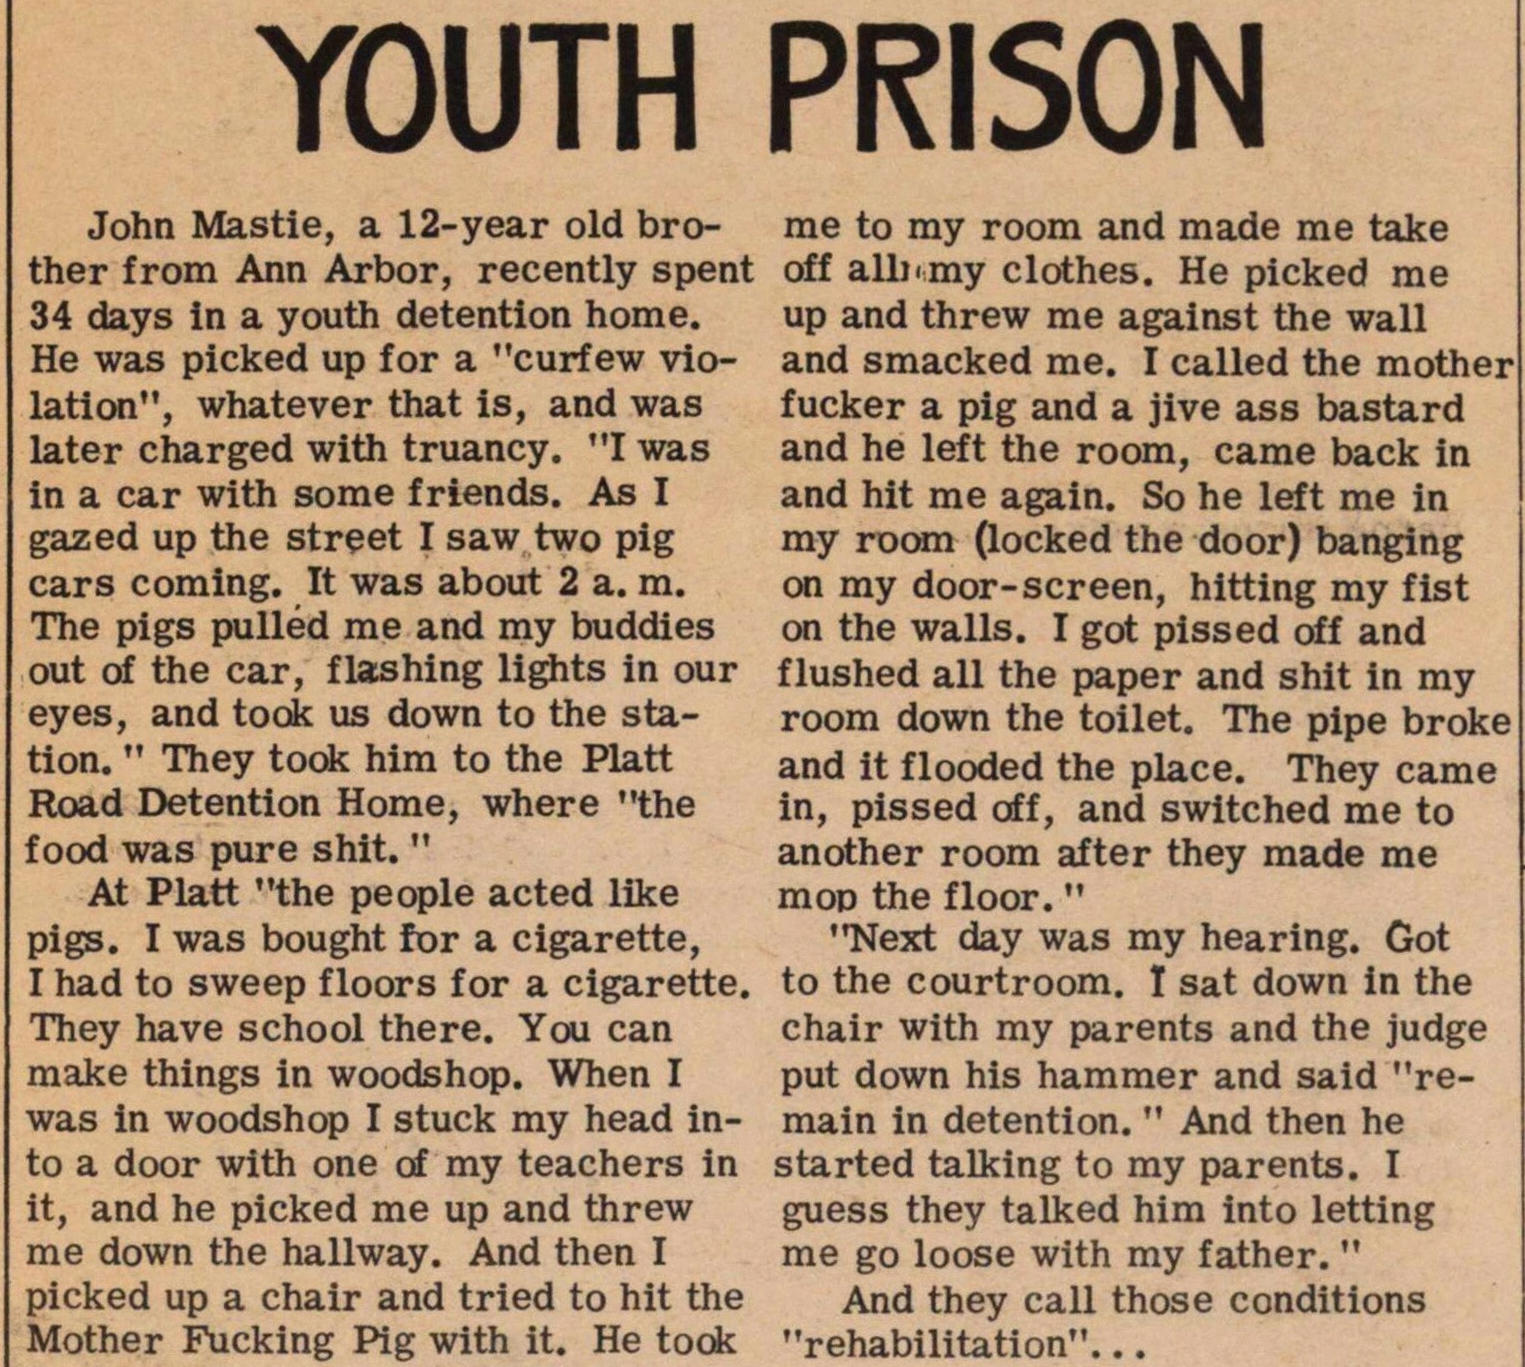 Youth Prison image